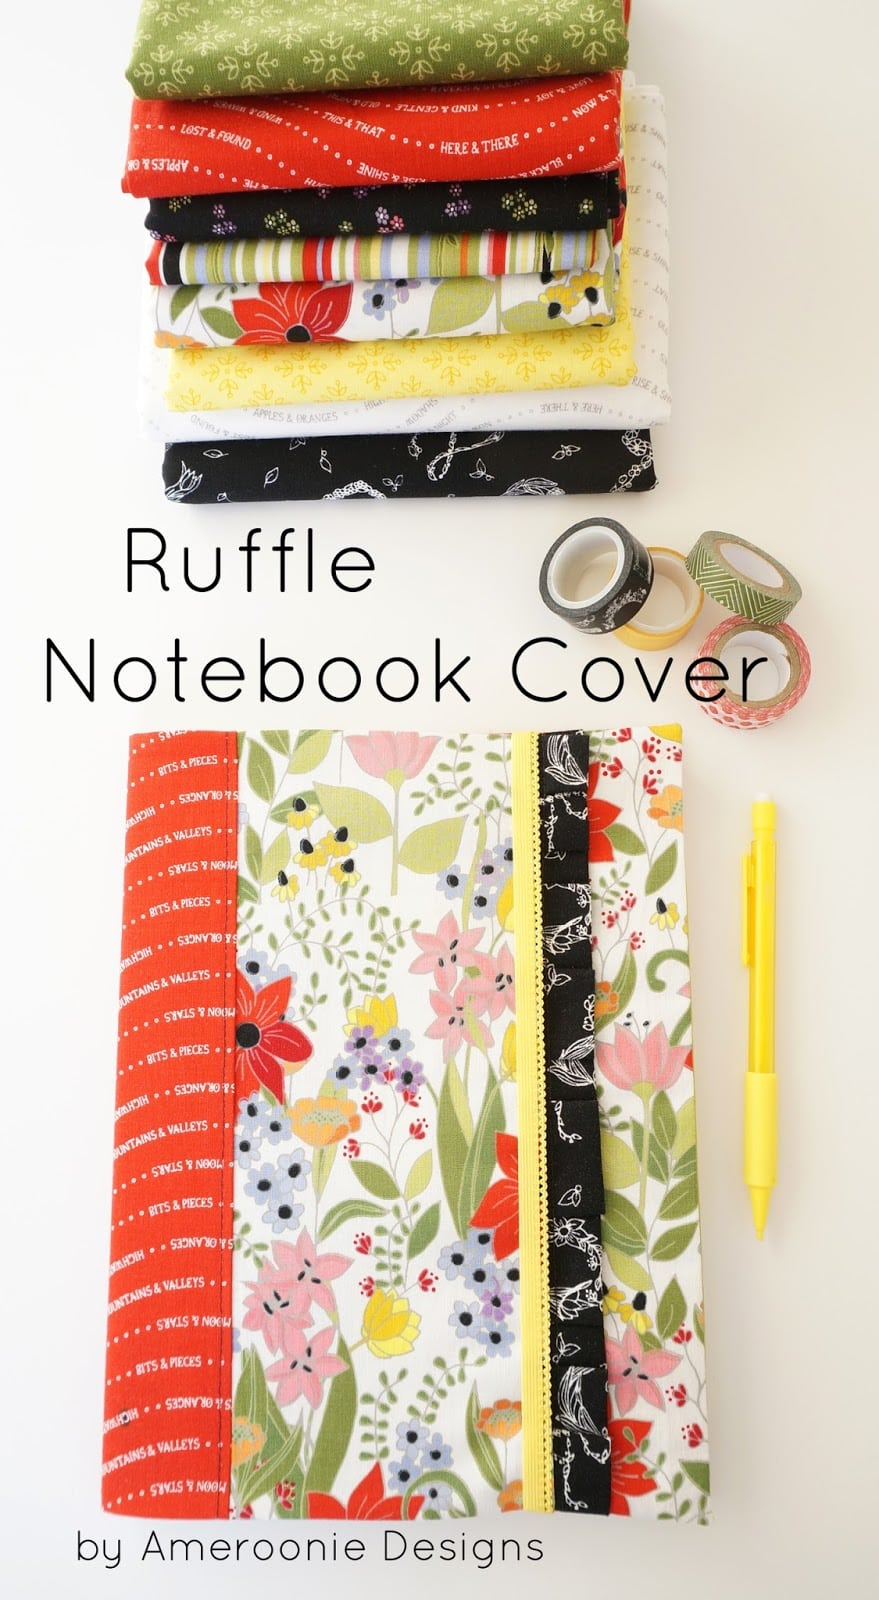 How to make a ruffle notebook cover